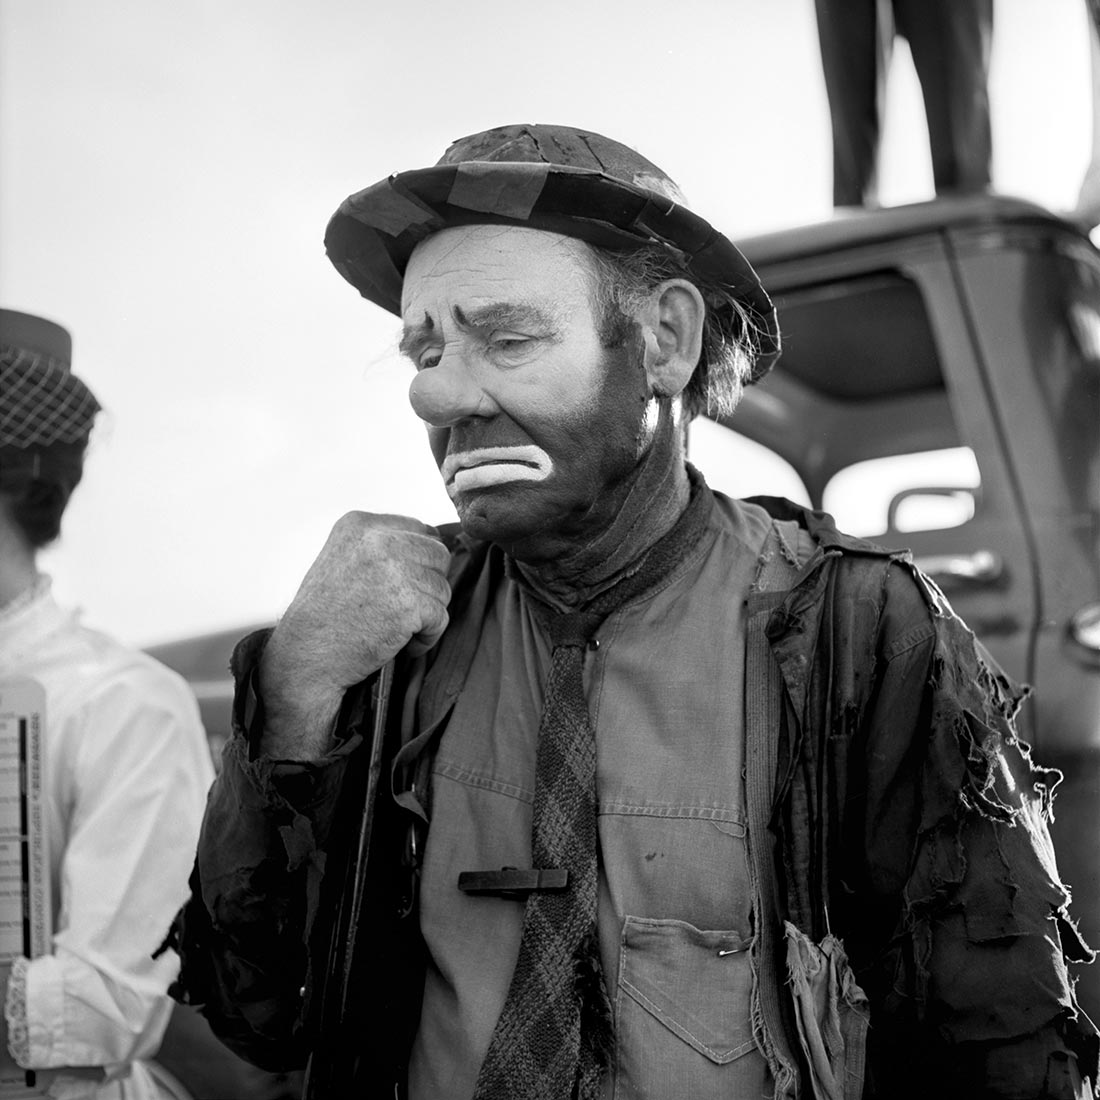 Emmett Kelly as the clown figure Weary Willie